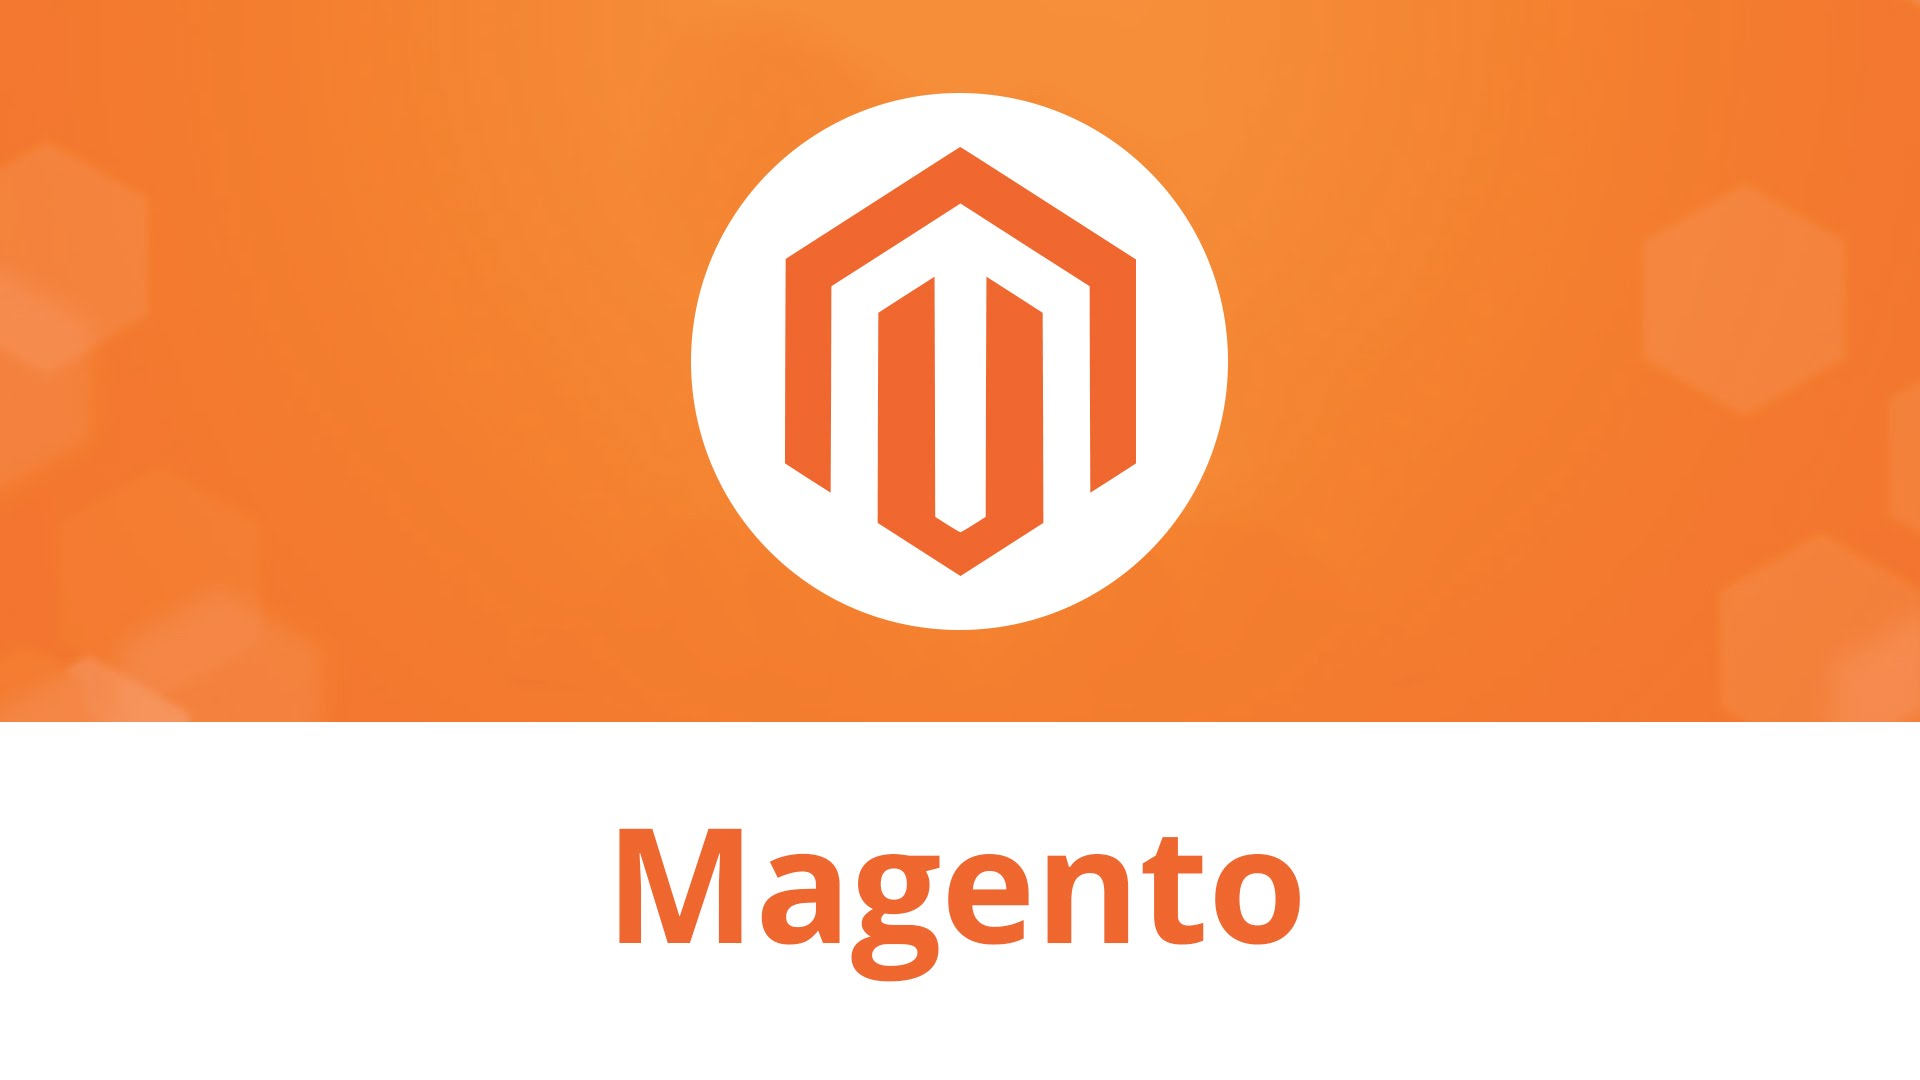 Magento is a technology stack used by big ecommerce companies, for that you should have at least a basic knowledge in web development